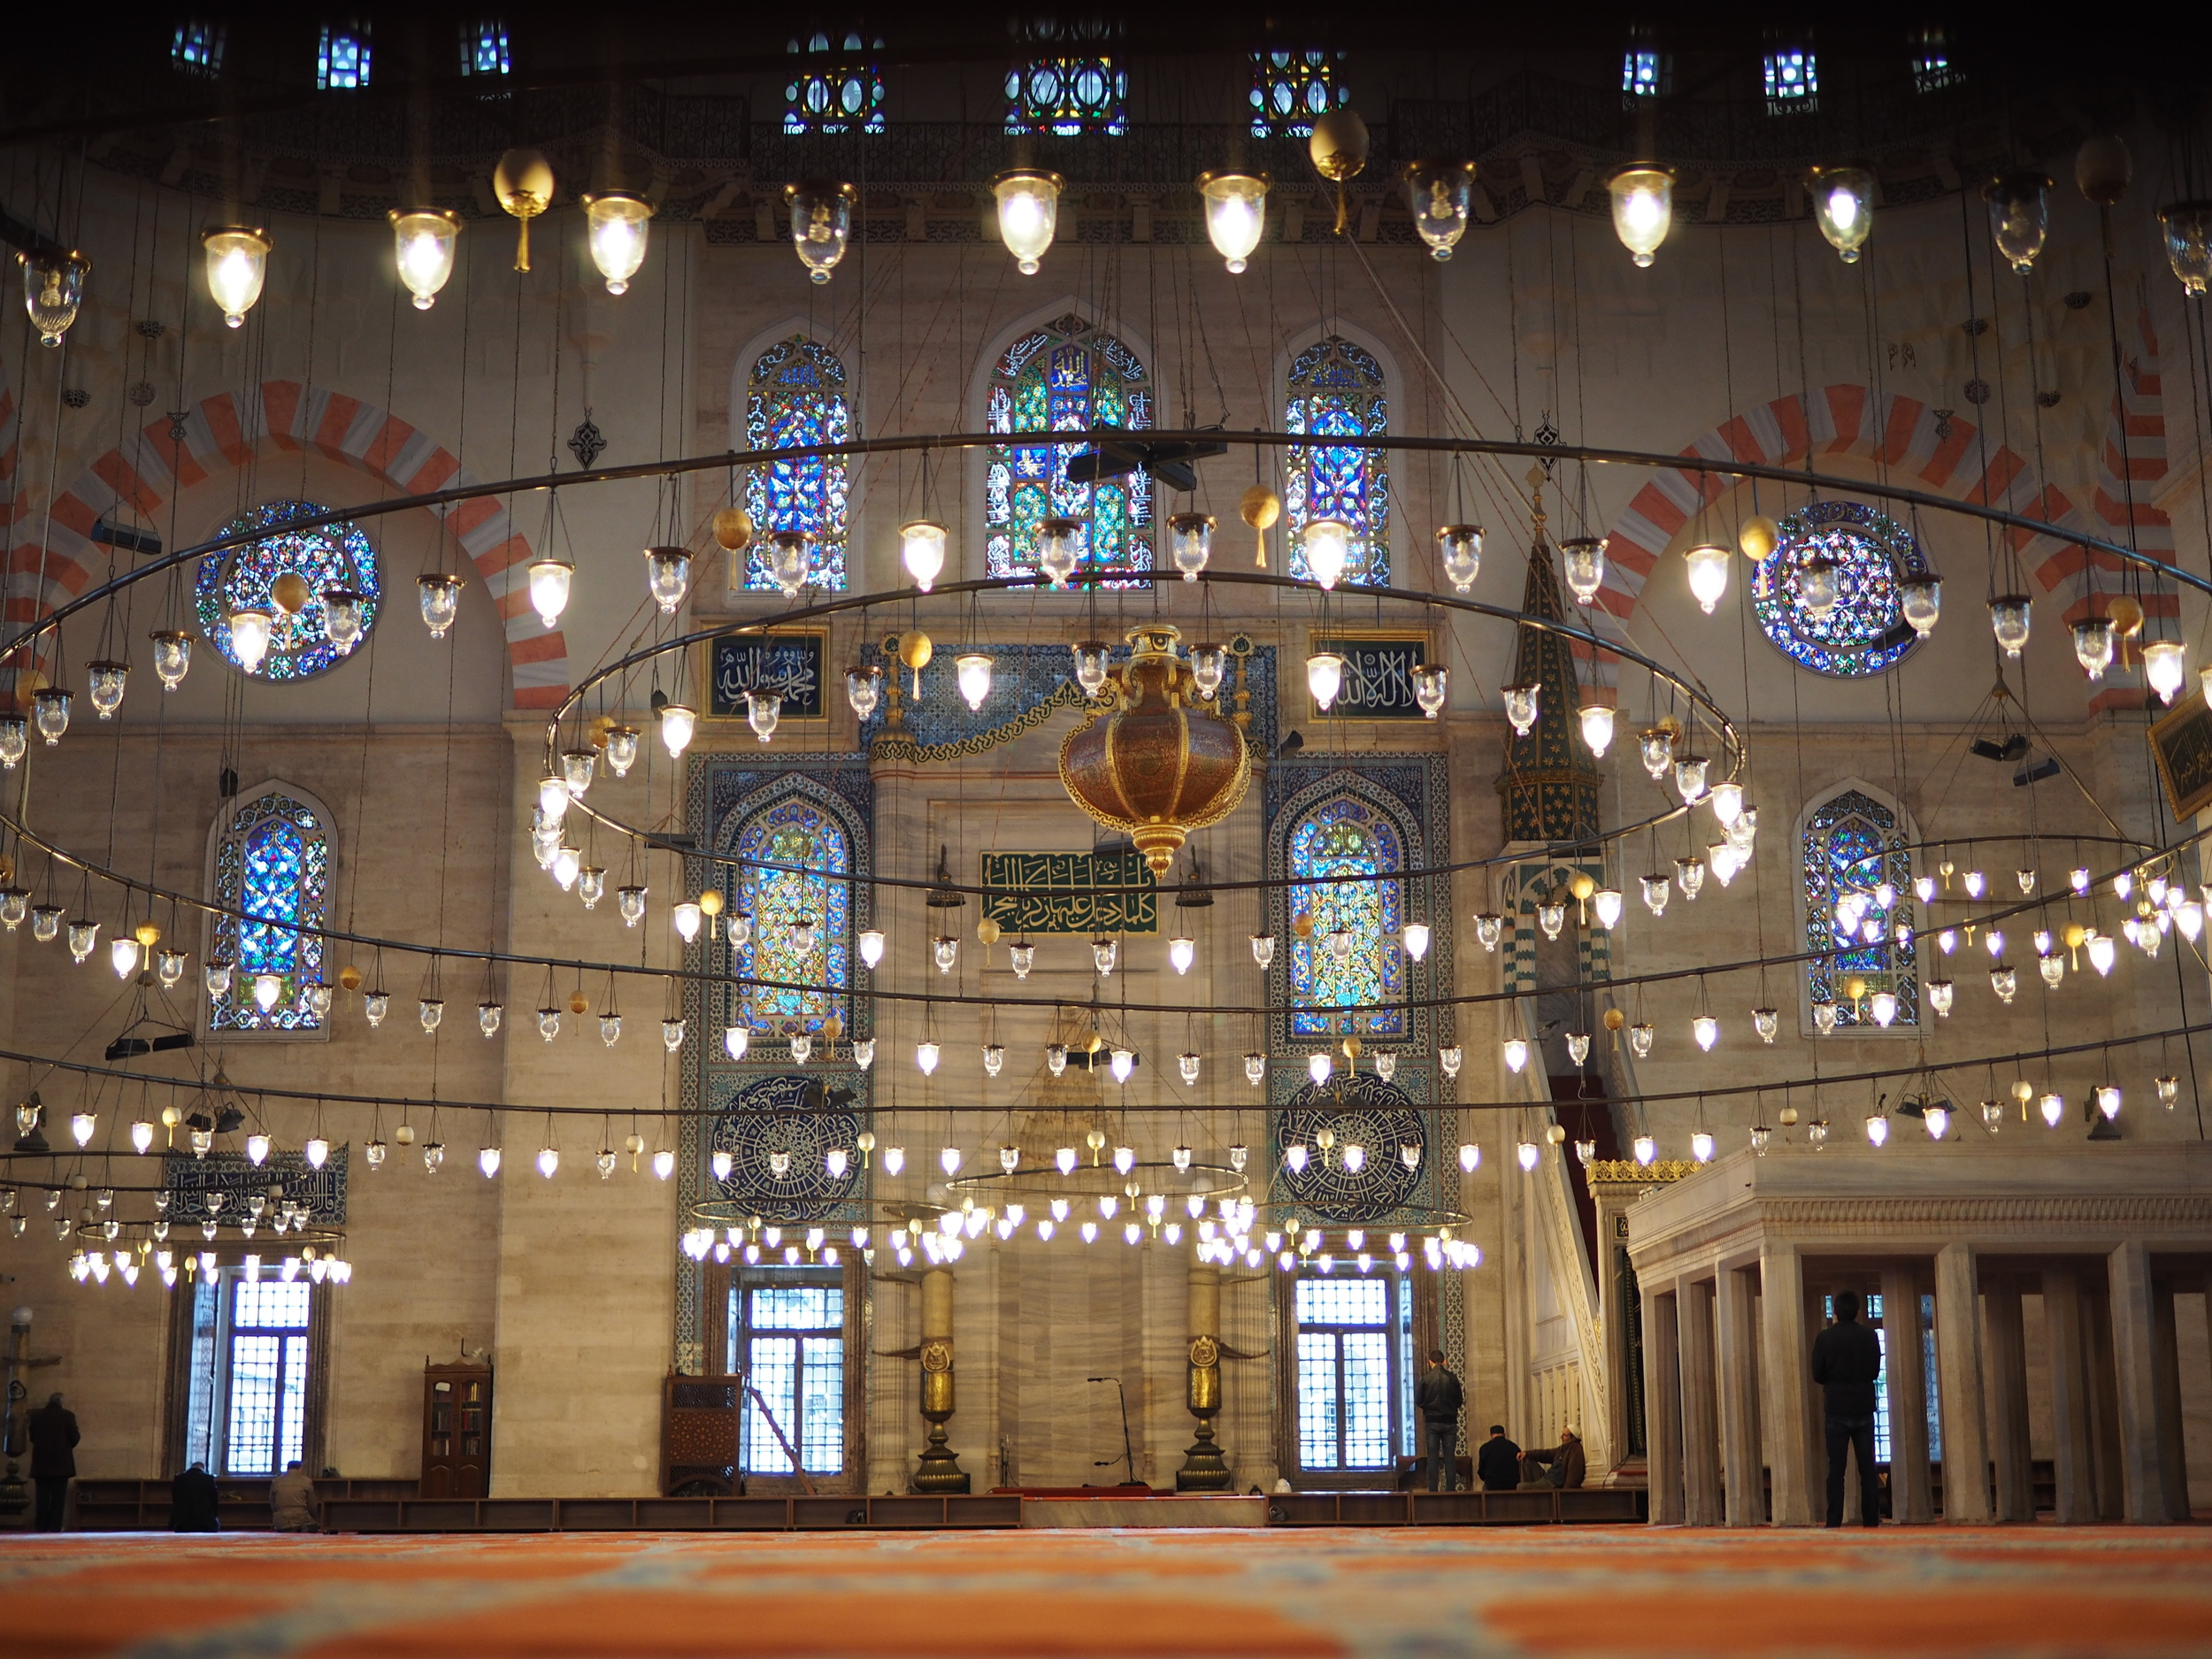 Mosque, Istanbul, Turkey